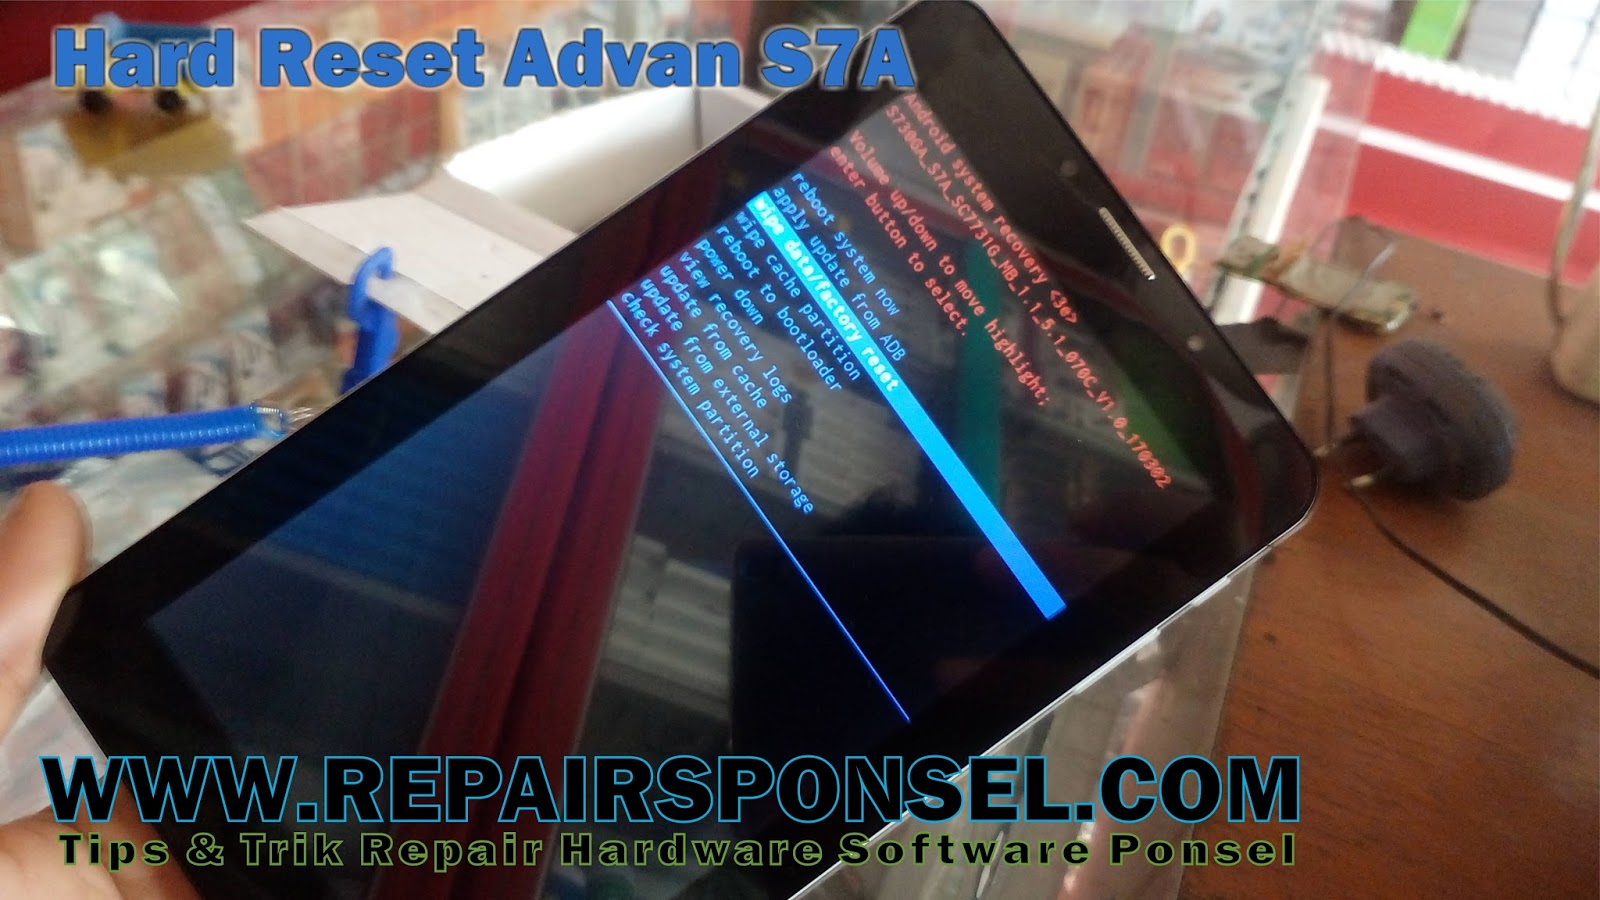 cara hard reset tablet advan s7a